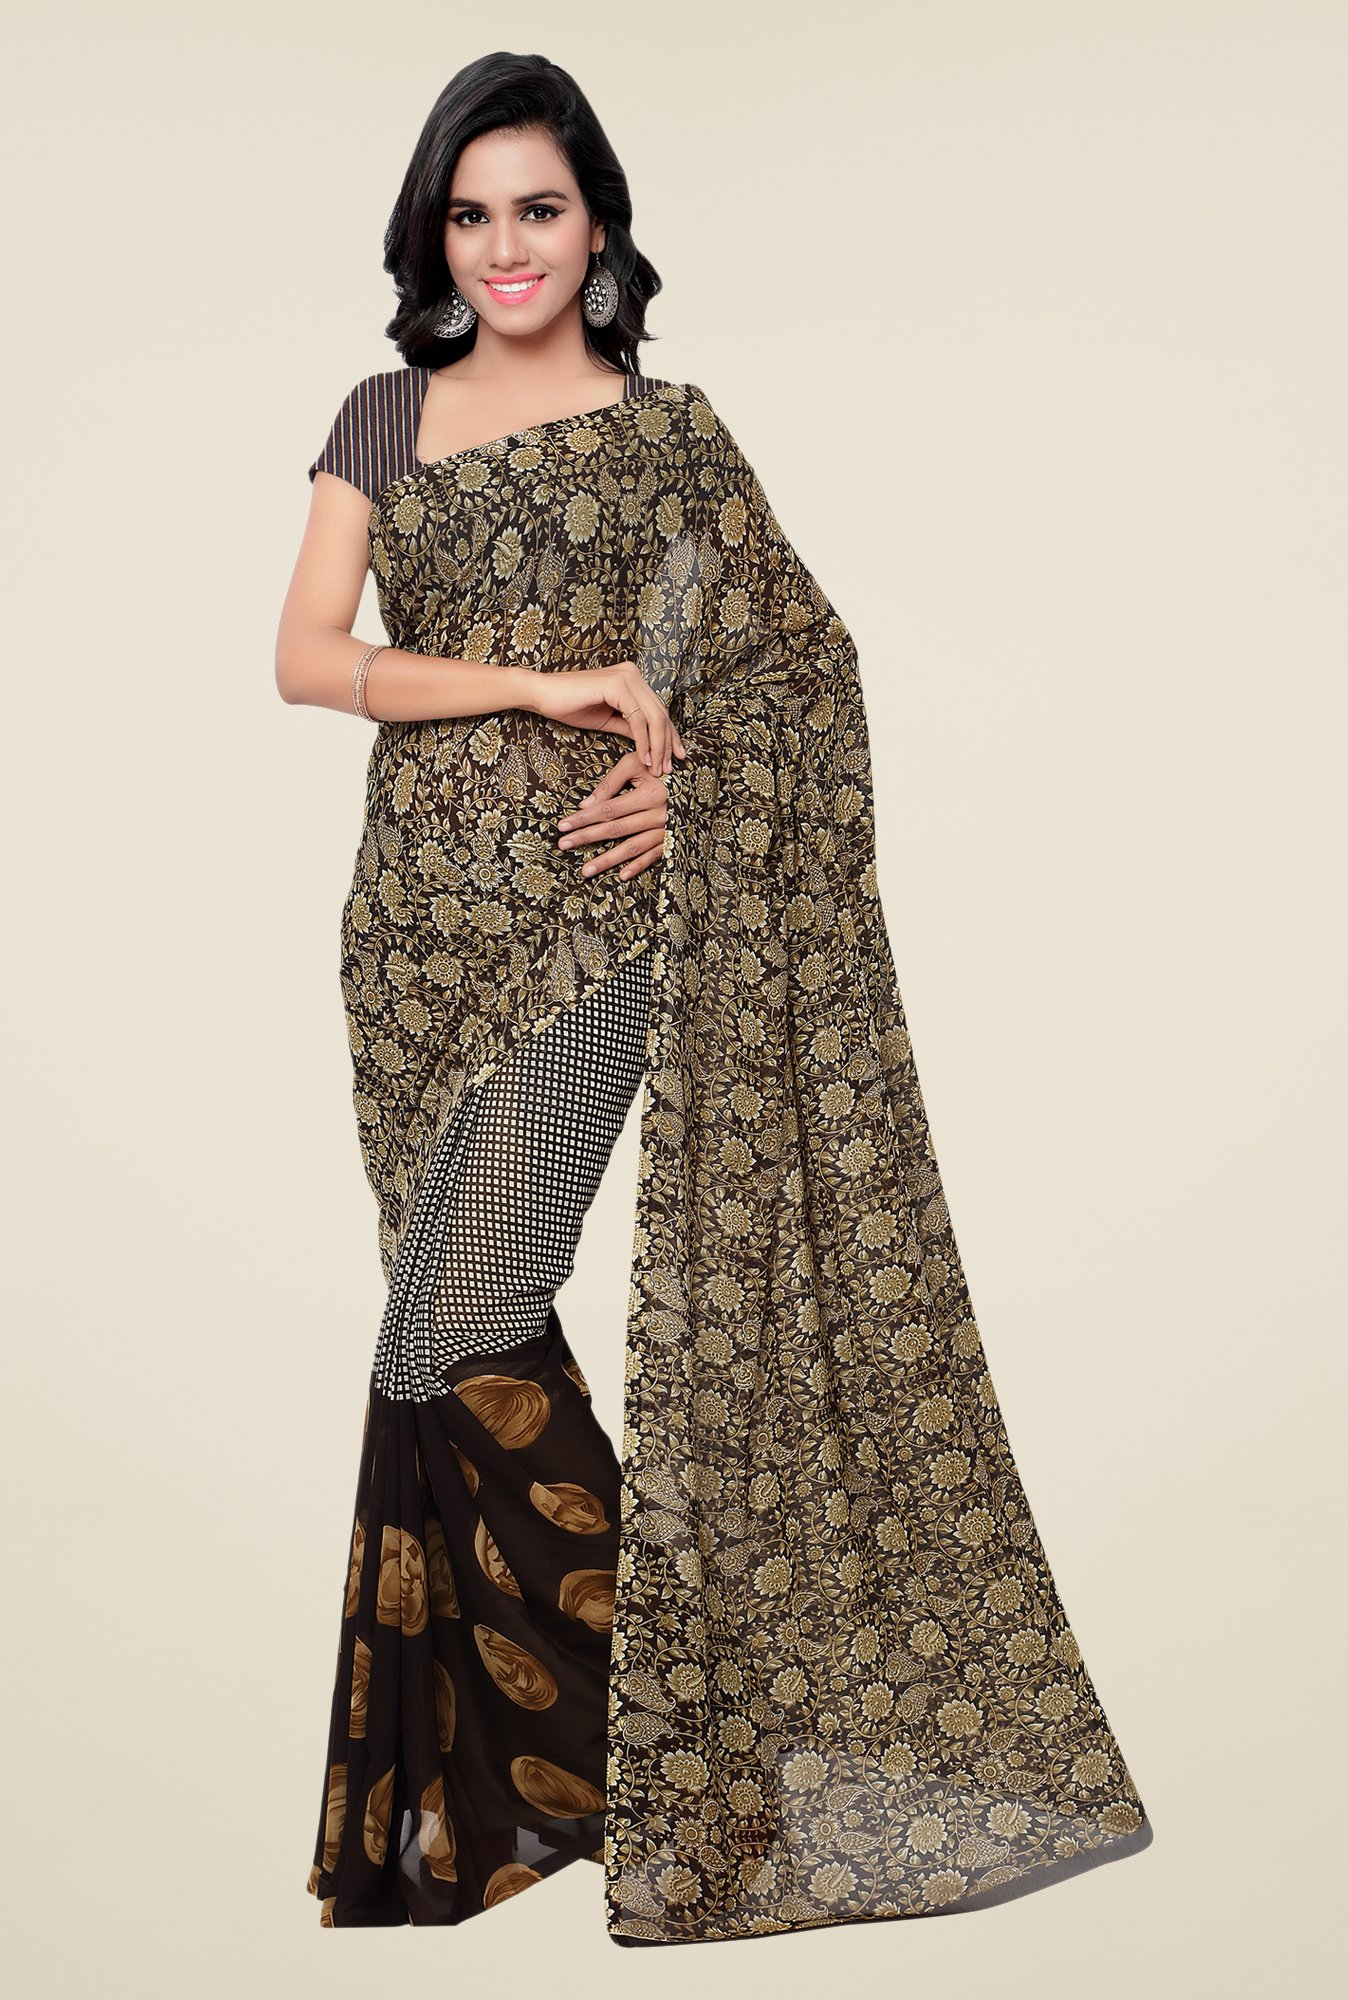 Shonaya Brown & Beige Georgette Printed Saree